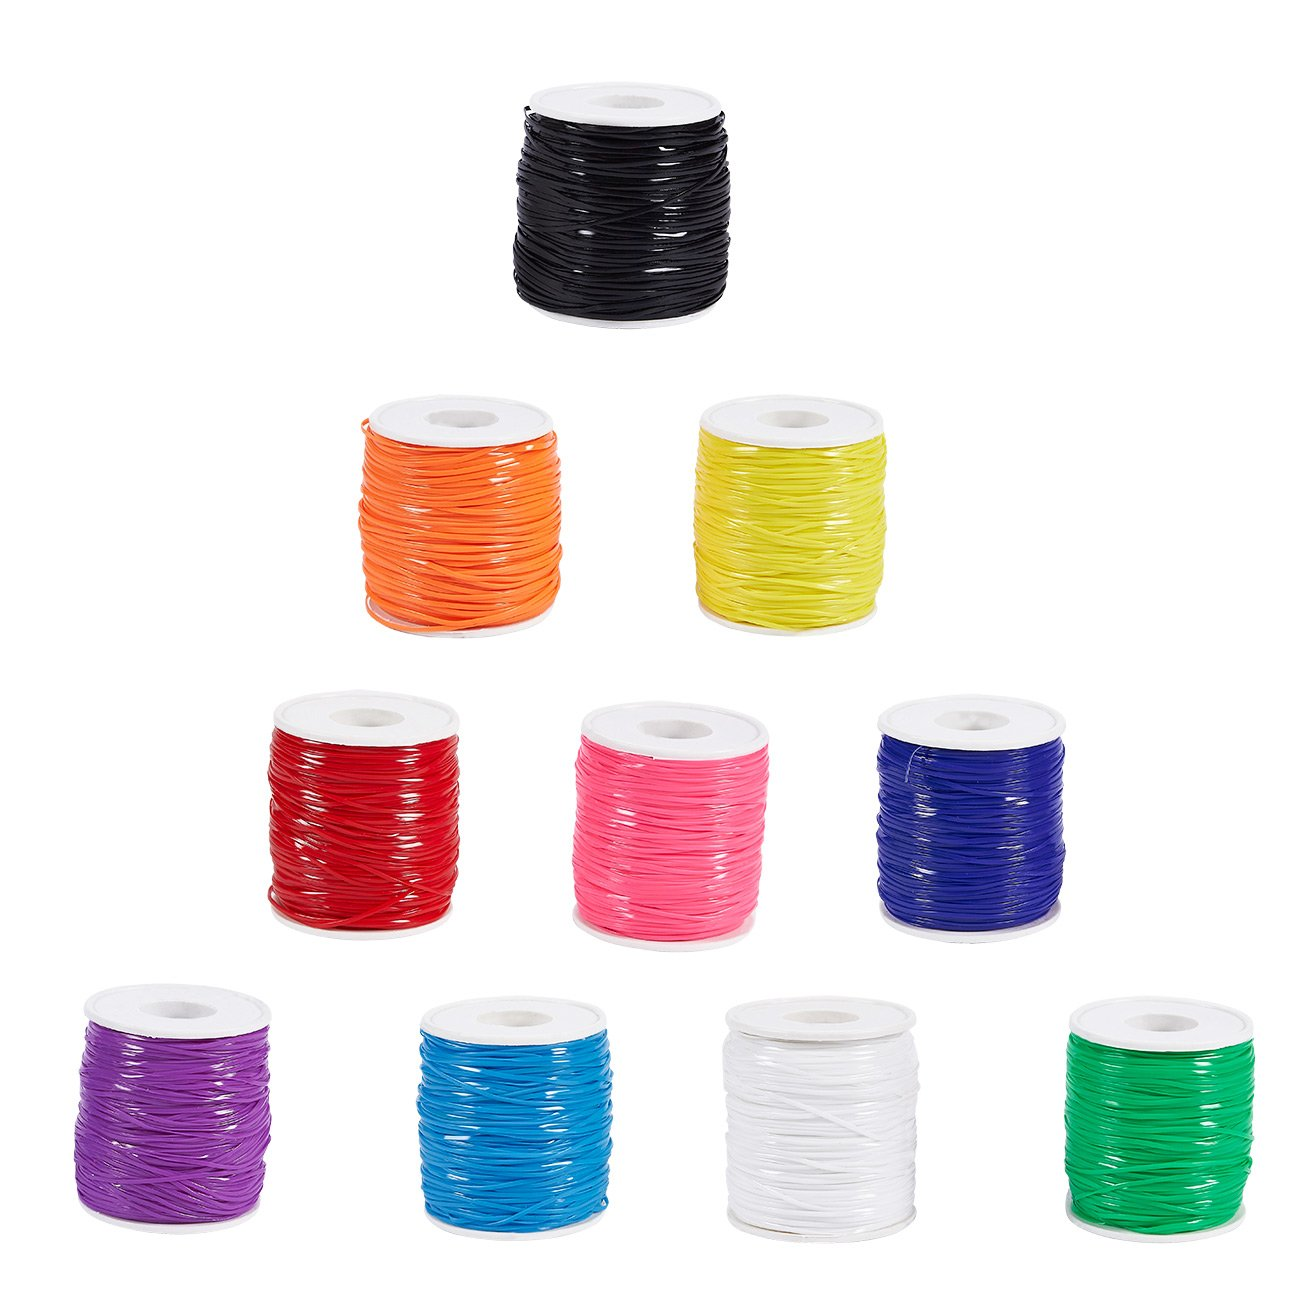 Plastic Lacing Cord - 10-Pack Plastic String for Lanyard, Friendship Bracelet, Keychain Charm, DIY Craft, 10 Colors, 100 Yards Each Juvale